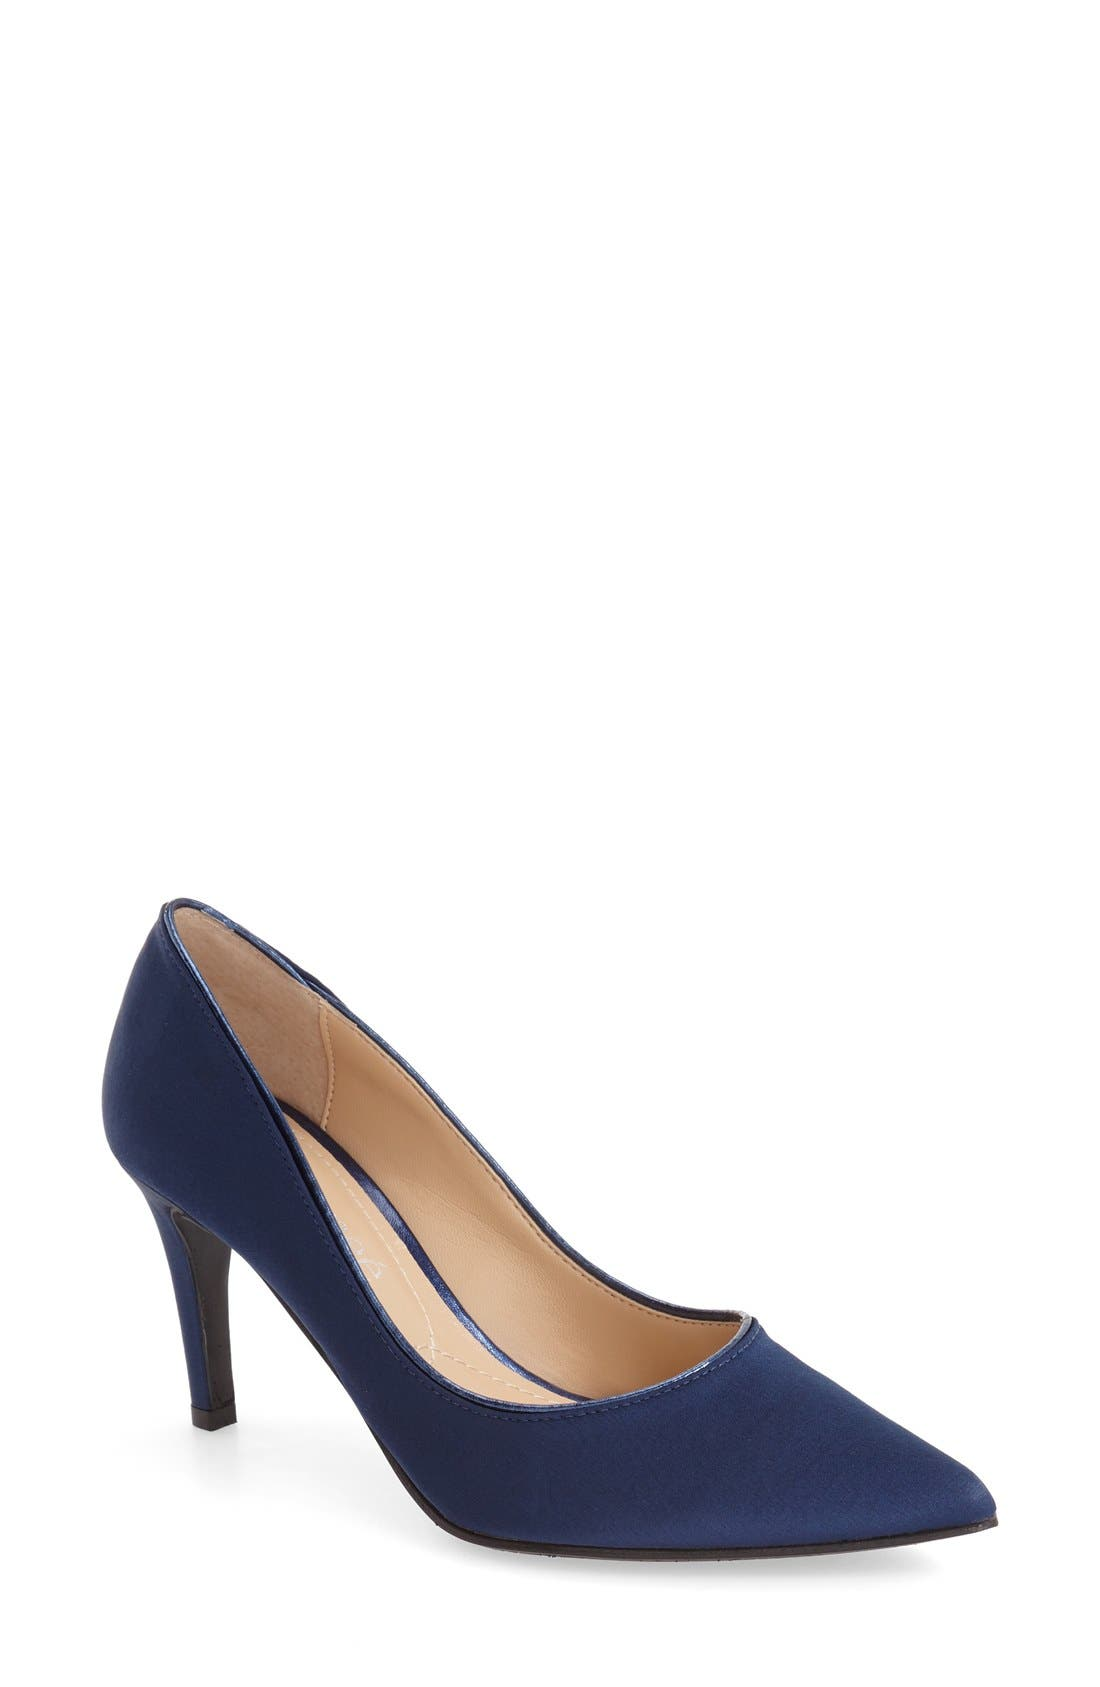 Alternate Image 1 Selected - J. Reneé 'Canaro' Pointy Toe Pump (Women)